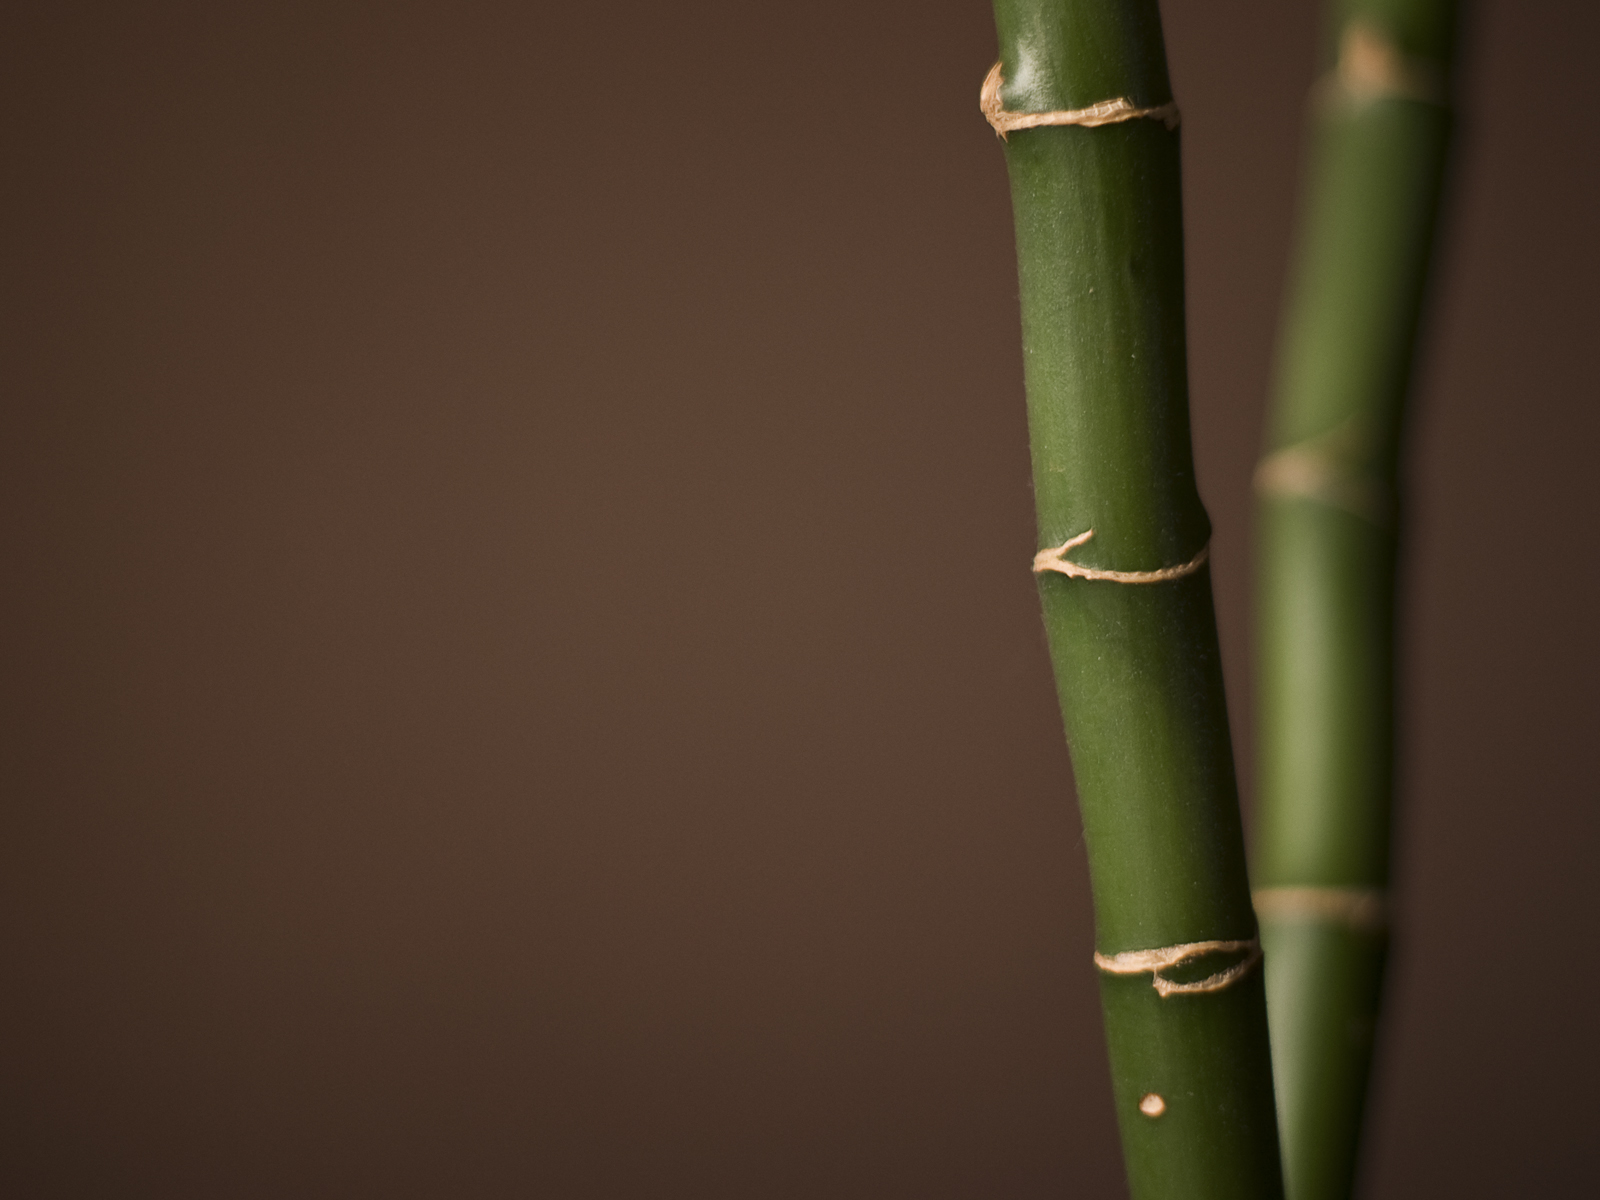 abstract backgrounds wallpaper bamboo - photo #29